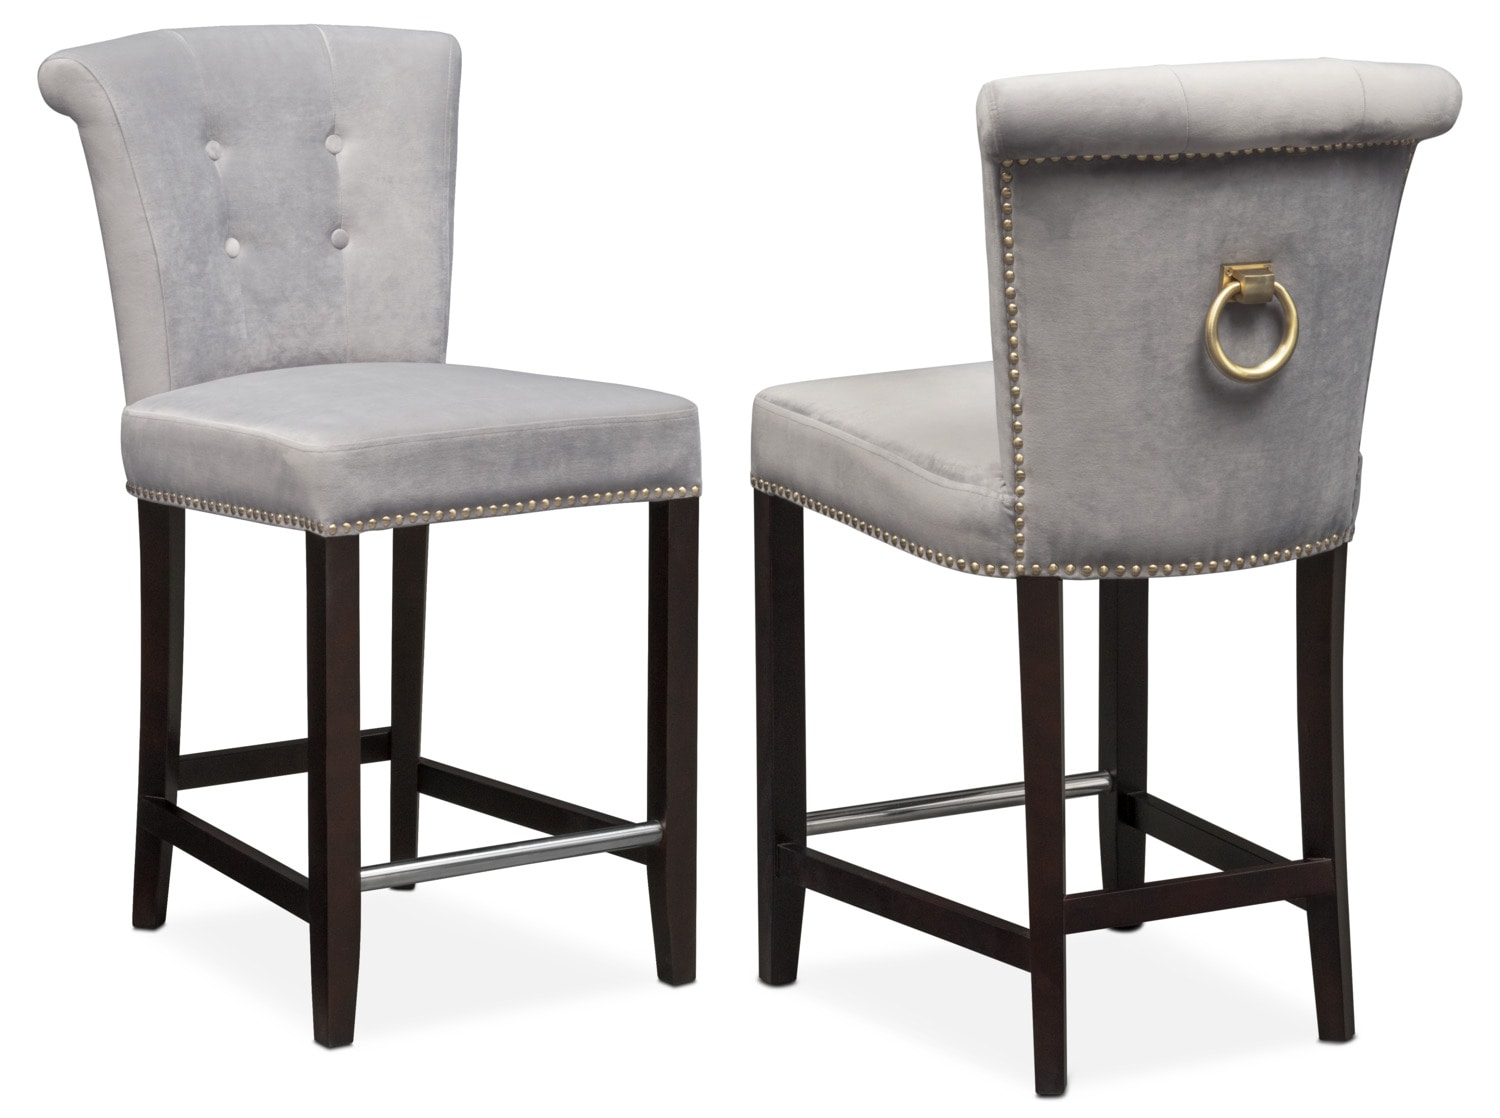 Calloway Counter-Height Stool - Gray/Gold  sc 1 st  Value City Furniture & Counter u0026 Bar Stools | Value City Furniture islam-shia.org